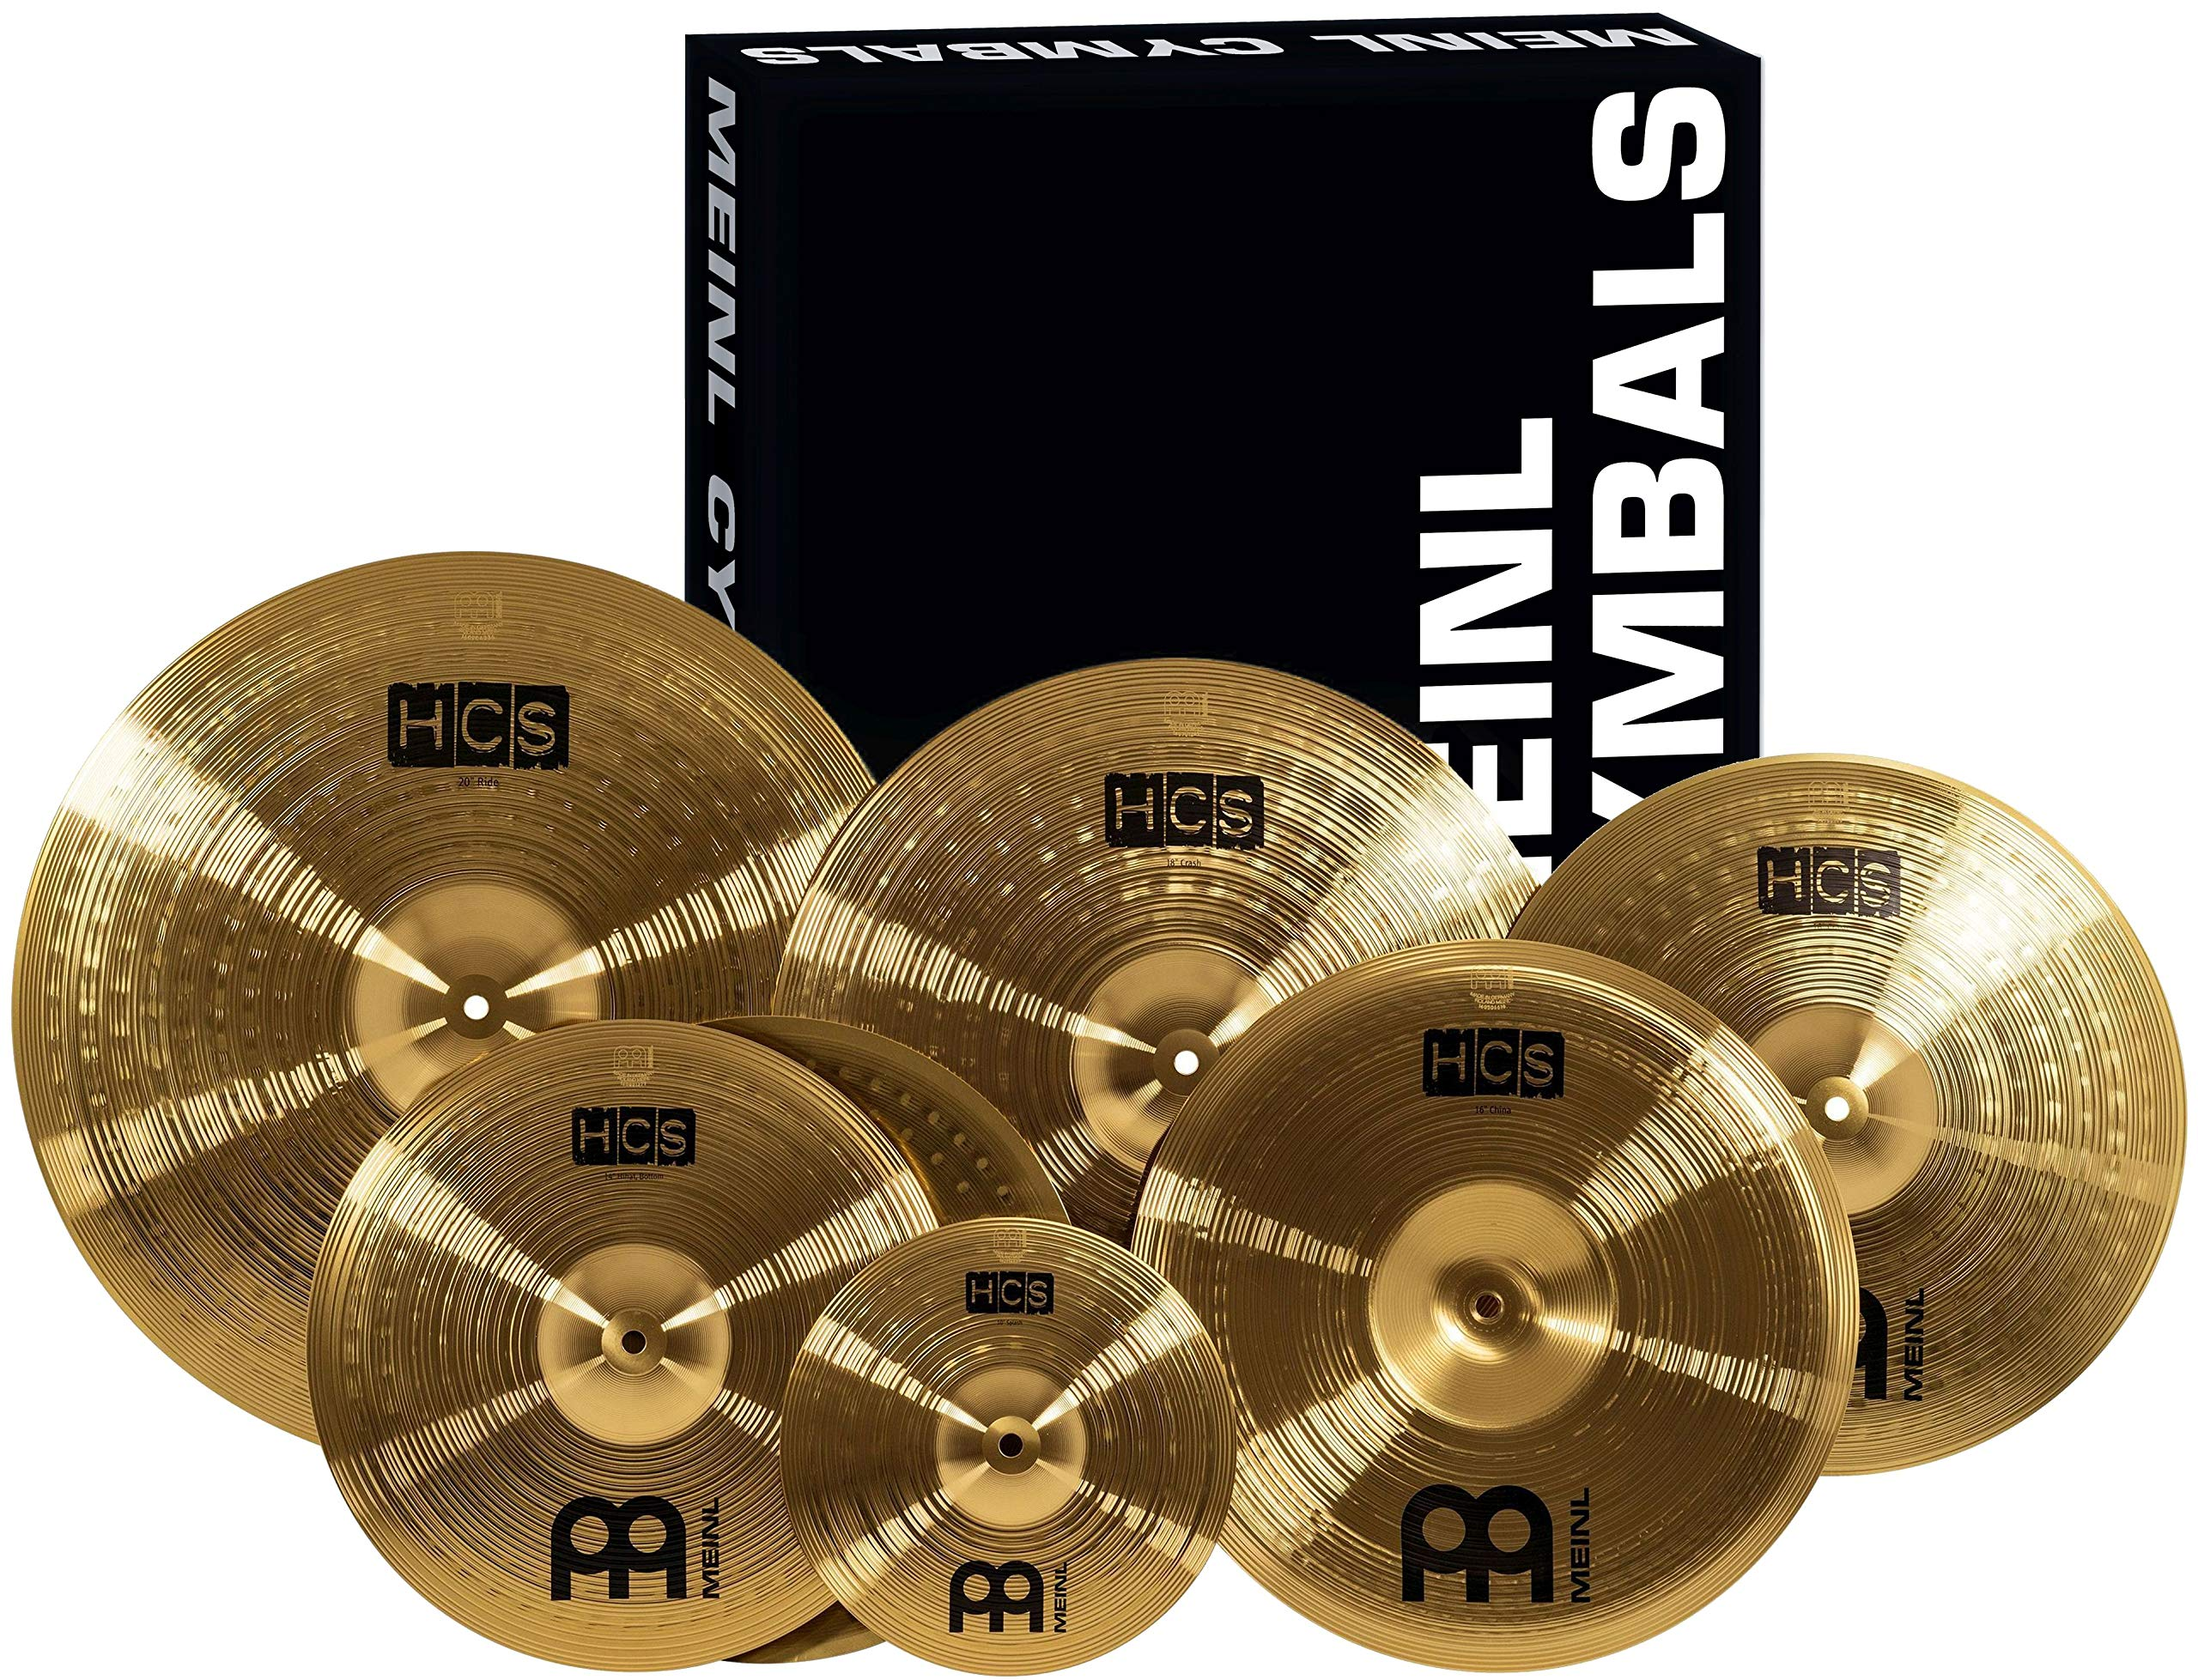 Meinl Cymbals Super Set Box Pack with 14'' Hihats, 20'' Ride, 16'' Crash, 18'' Crash, 16'' China, and a 10'' Splash - HCS Traditional Finish Brass - Made In Germany, 2-YEAR WARRANTY (HCS-SCS) by Meinl Cymbals